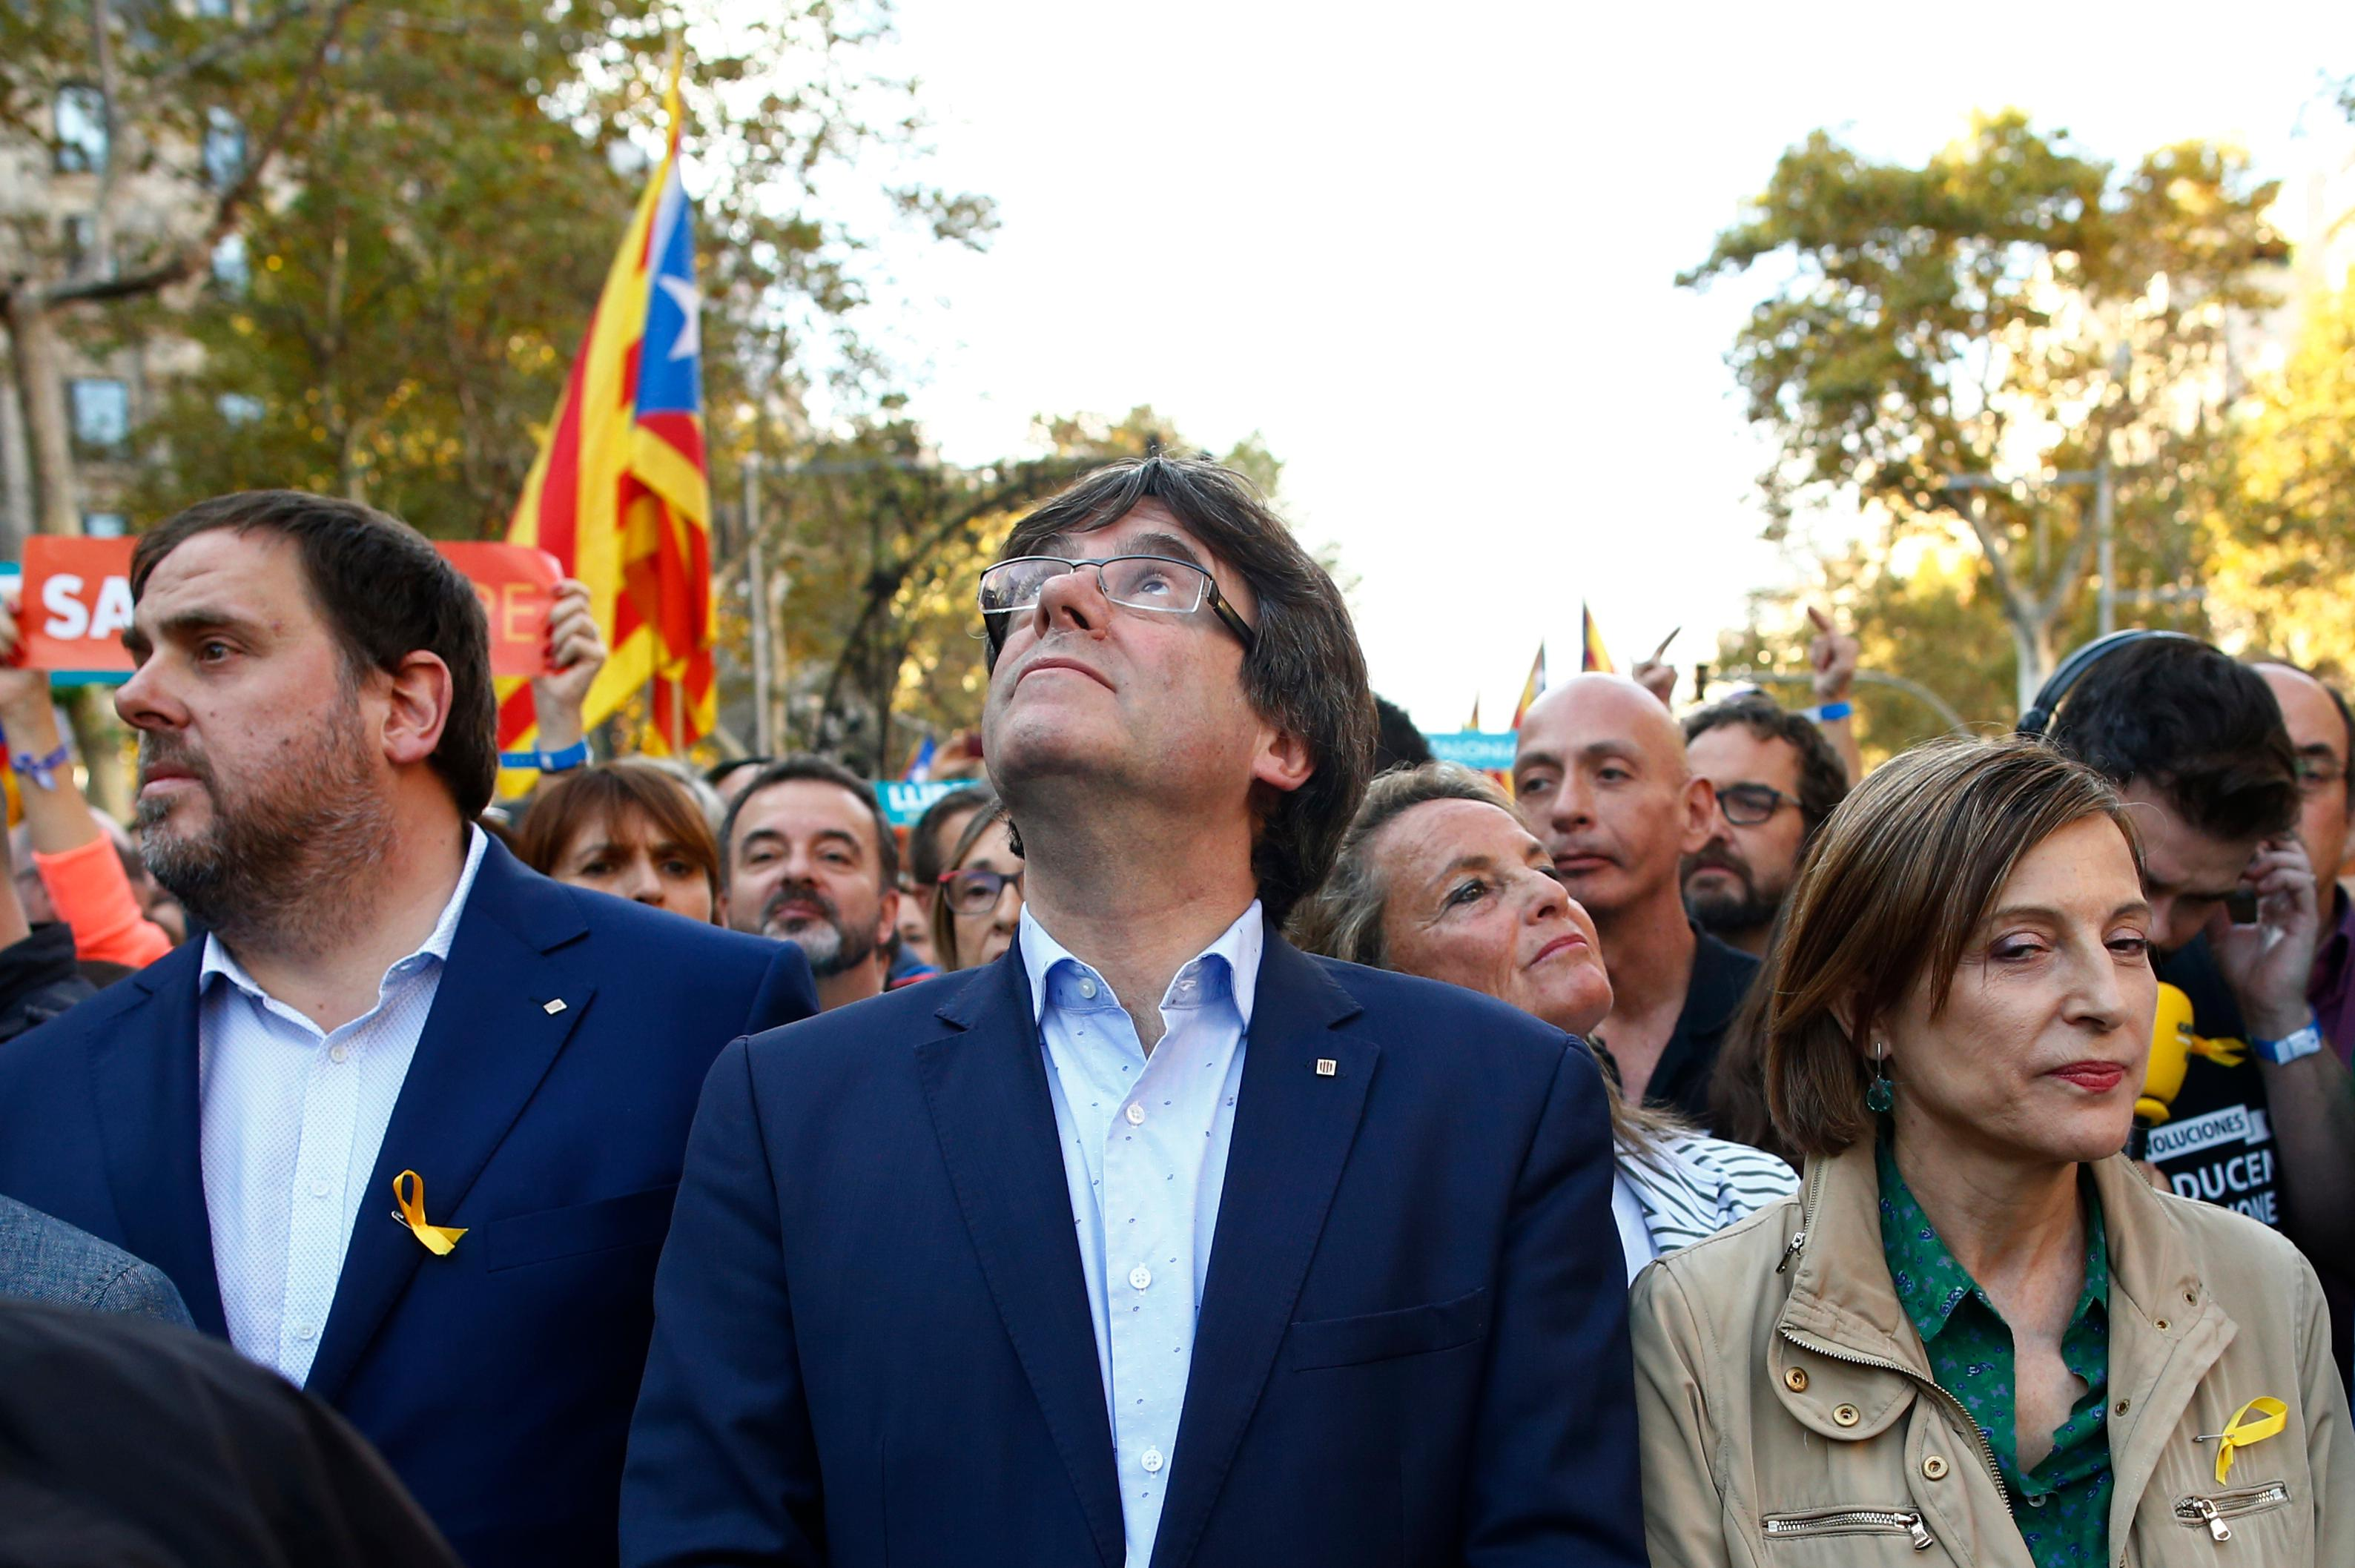 Catalan President Carles Puigdemont, centre, takes part at a march with deputy president Oriol Junqueras, left and Carme Forcadell, speaker of the house in the Catalan parliament to protest against the National Court's decision to imprison civil society leaders, in Barcelona, Spain, Saturday, Oct. 21, 2017. The Spanish government moved decisively Saturday to use a previously untapped constitutional power so it can take control of Catalonia and derail the independence movement led by separatist politicians in the prosperous industrial region. (AP Photo/Manu Fernandez)